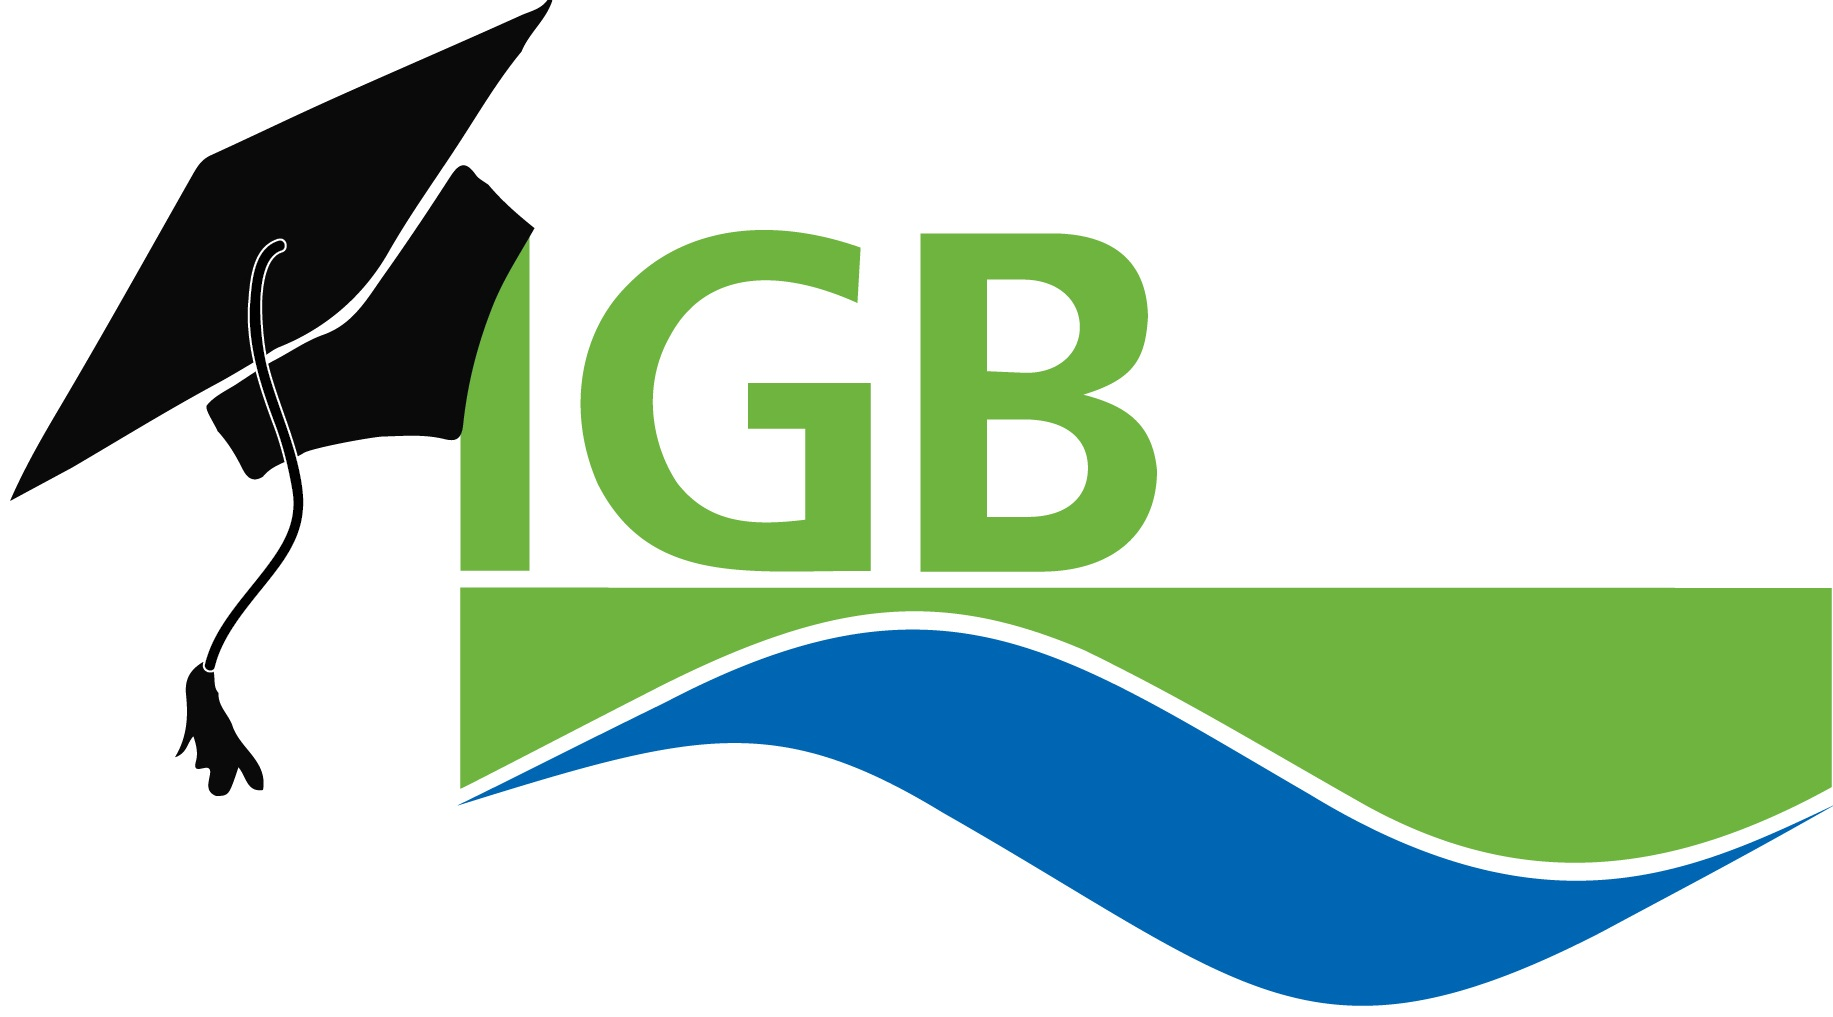 IGB logo with doctoral hat